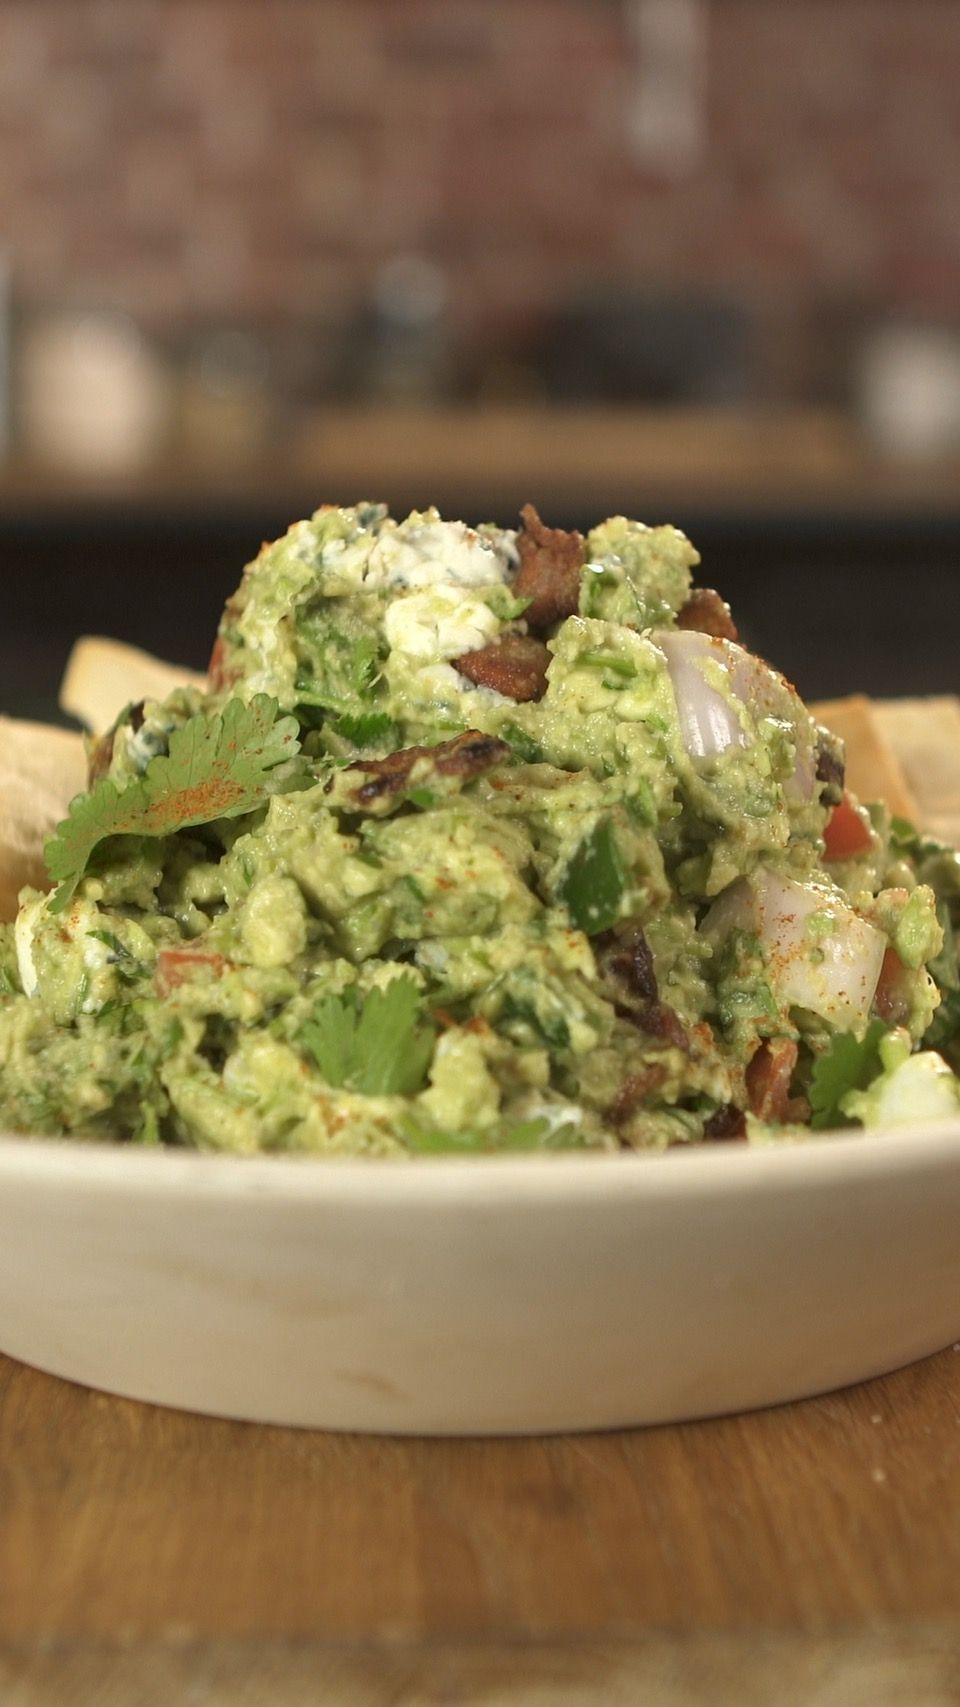 Recipe with video instructions: Marcus is bringing you his take on Guacamole.   Ingredients: 4 Haas Avocados, 2 limes juiced, Kosher salt, 1/2 tsp cumin, 1/2 tsp cayenne, 1 shallot, diced, 1 jalapeno, diced, ¼ c bacon, diced, 2 medium roma tomatoes, seeded and diced, ½c chopped cilantro, 1 clove minced garlic, 2 Tbsp smoked blue cheese